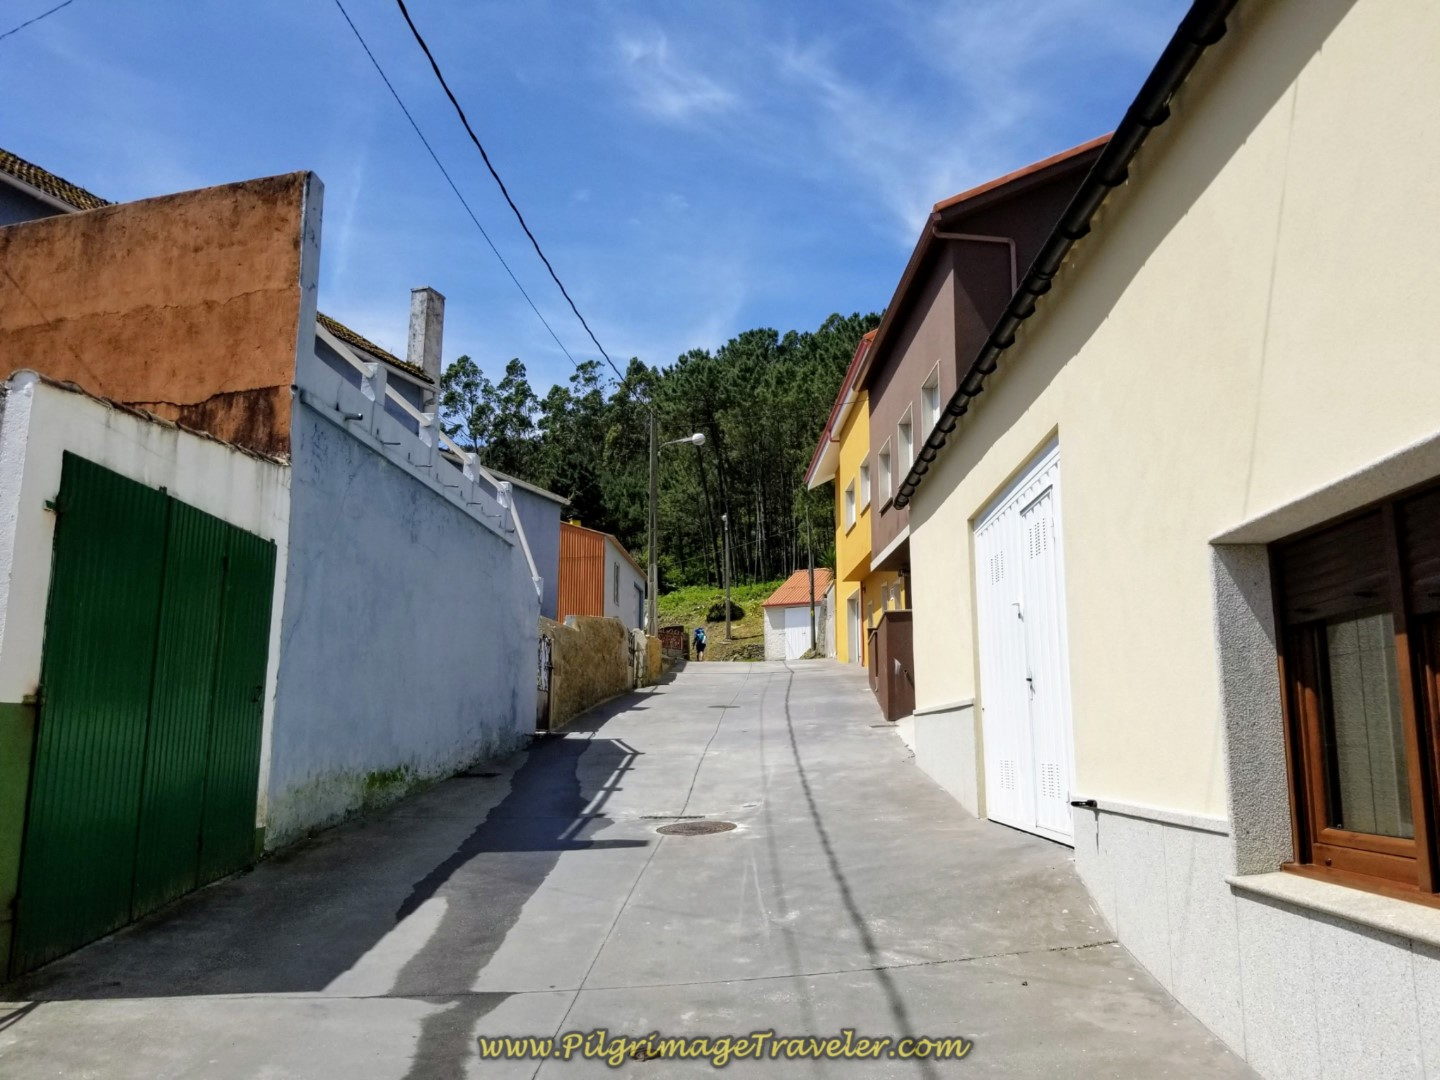 Climb Through the Back Street of Sardiñeiro